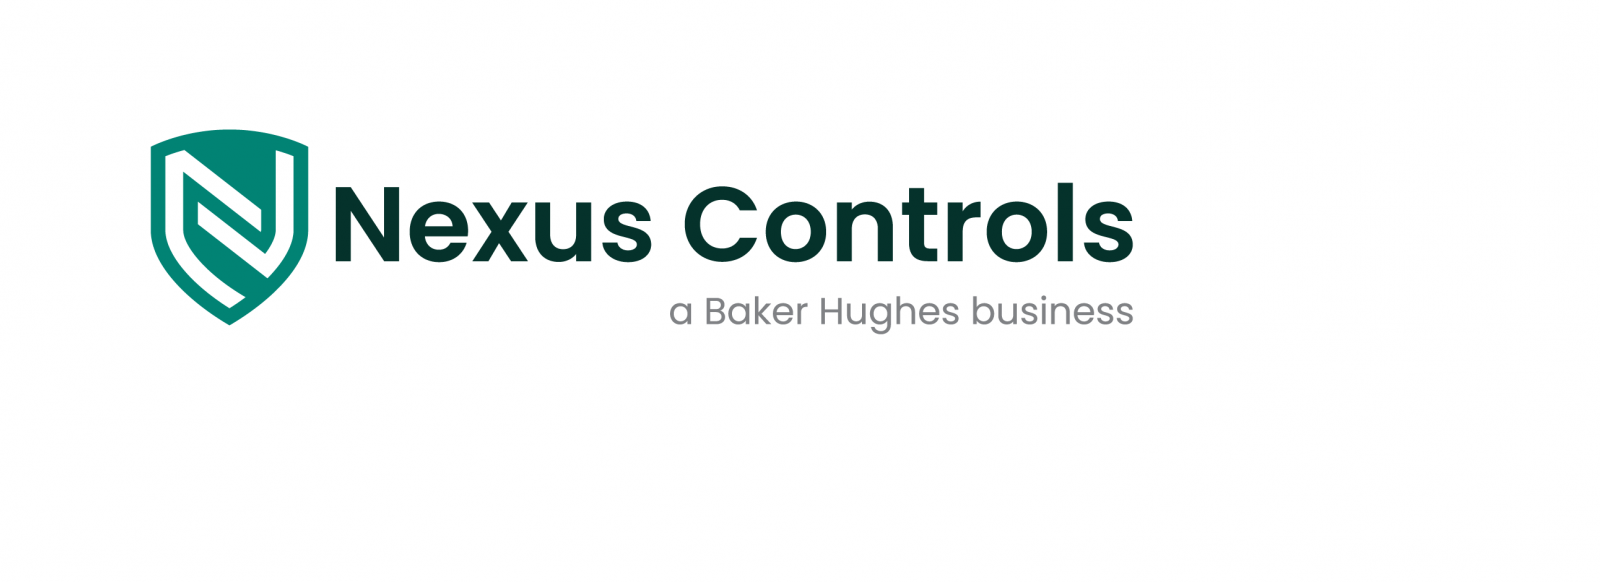 Nexus Controls Logo